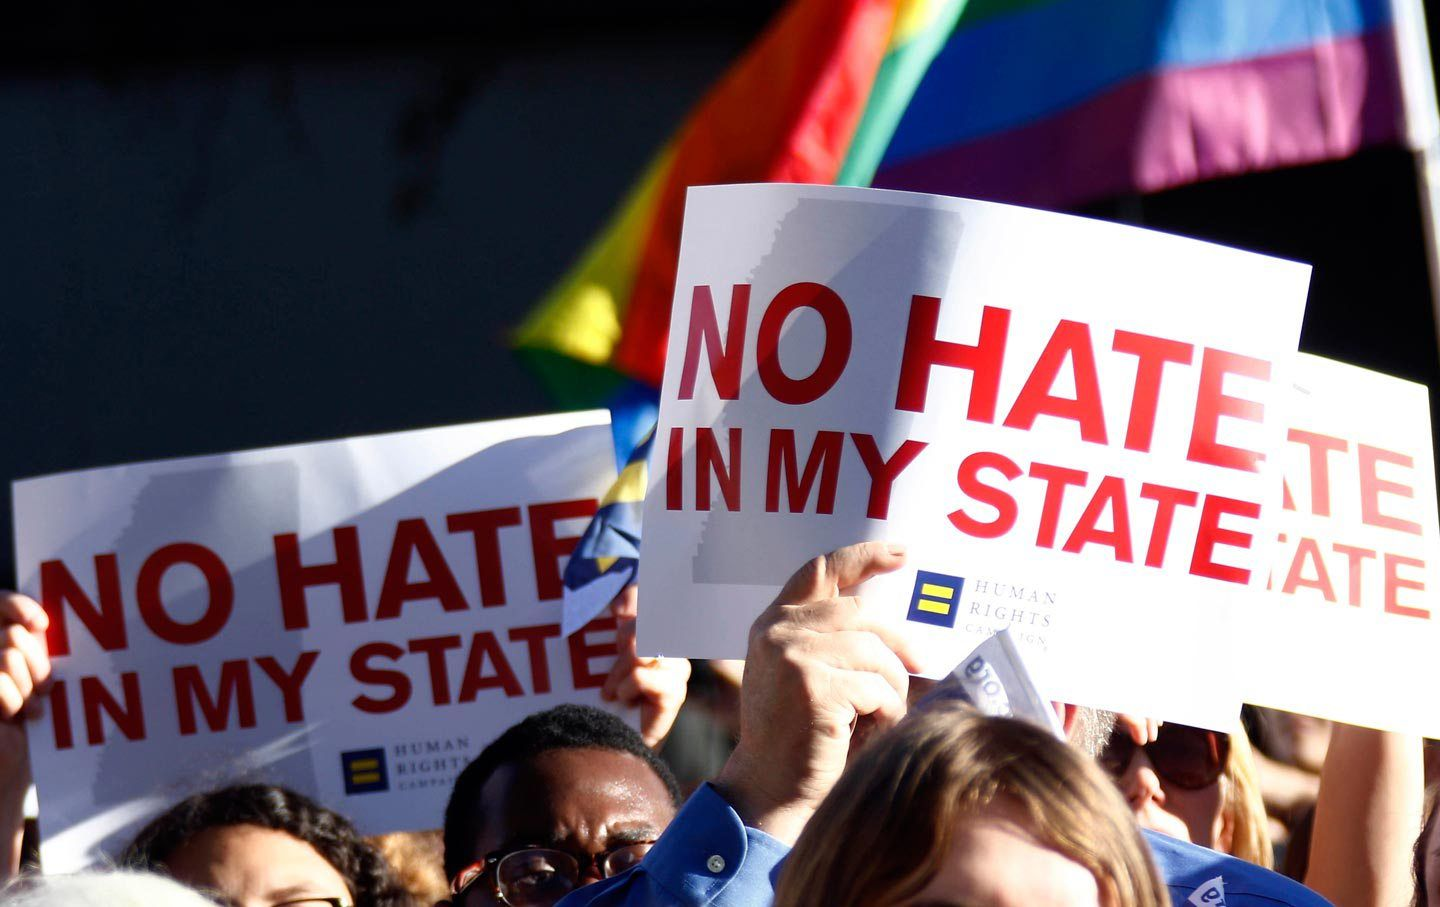 Bernie Sanders vows to overturn Mississippi and North Carolina's recent  anti-LGBT laws if he is elected president.